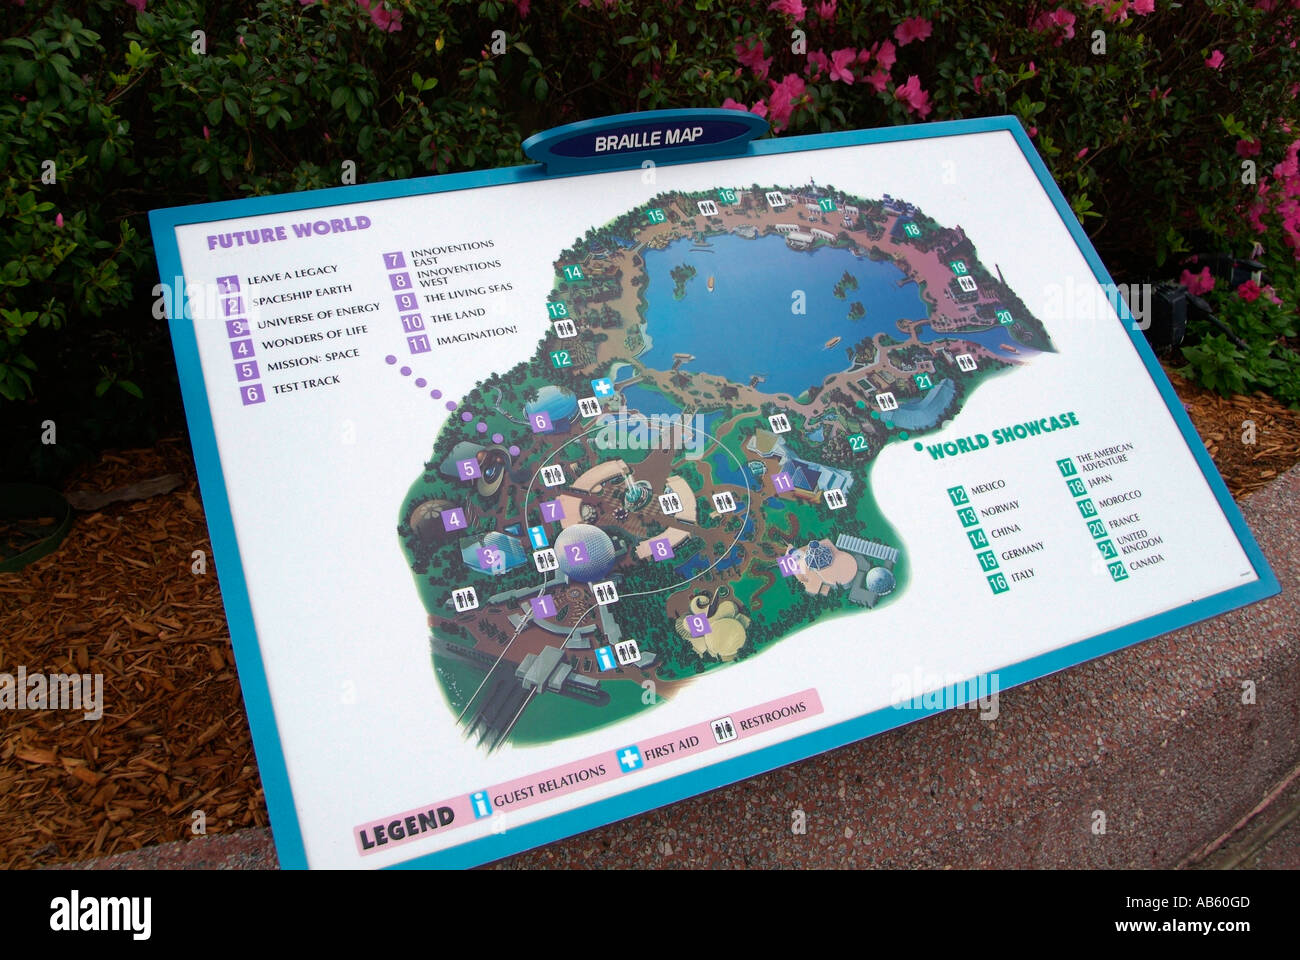 Map And Directions From One Place To Another%0A Uae Maps And Directions Canadian Map Directions Map directions in Braille  at The Epcot Center at